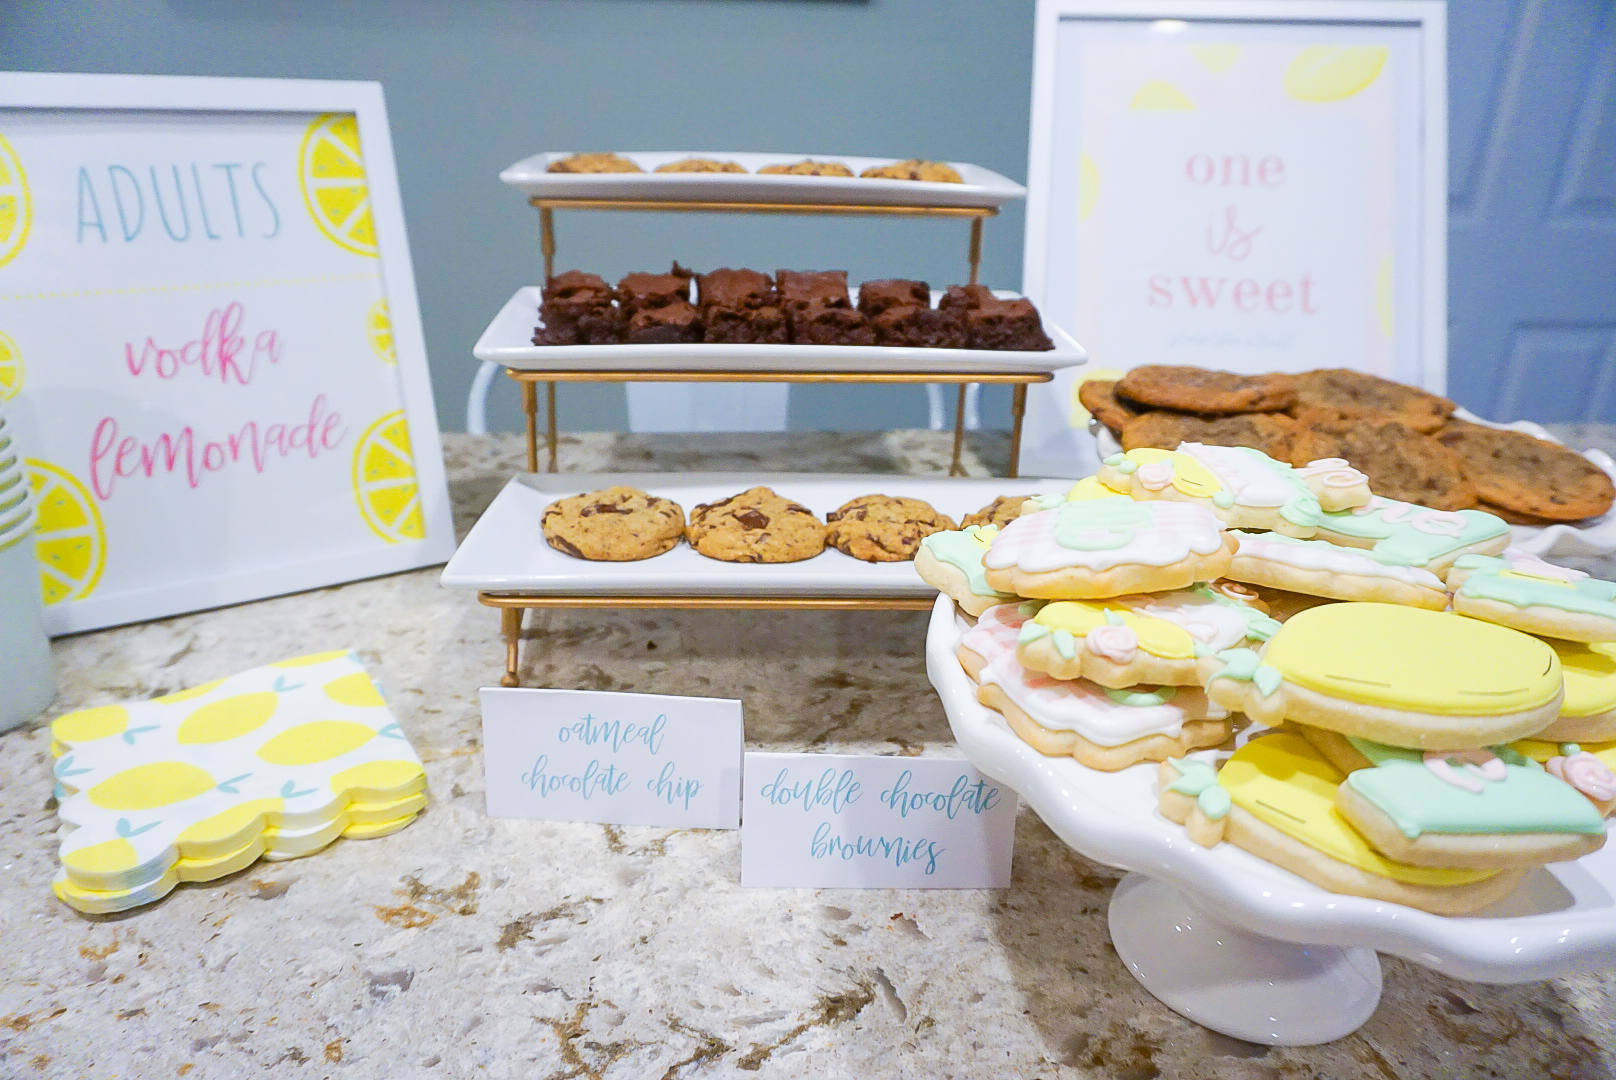 COVID party 2020, COVID drive by party ideas, lemonade party, first birthday party foods